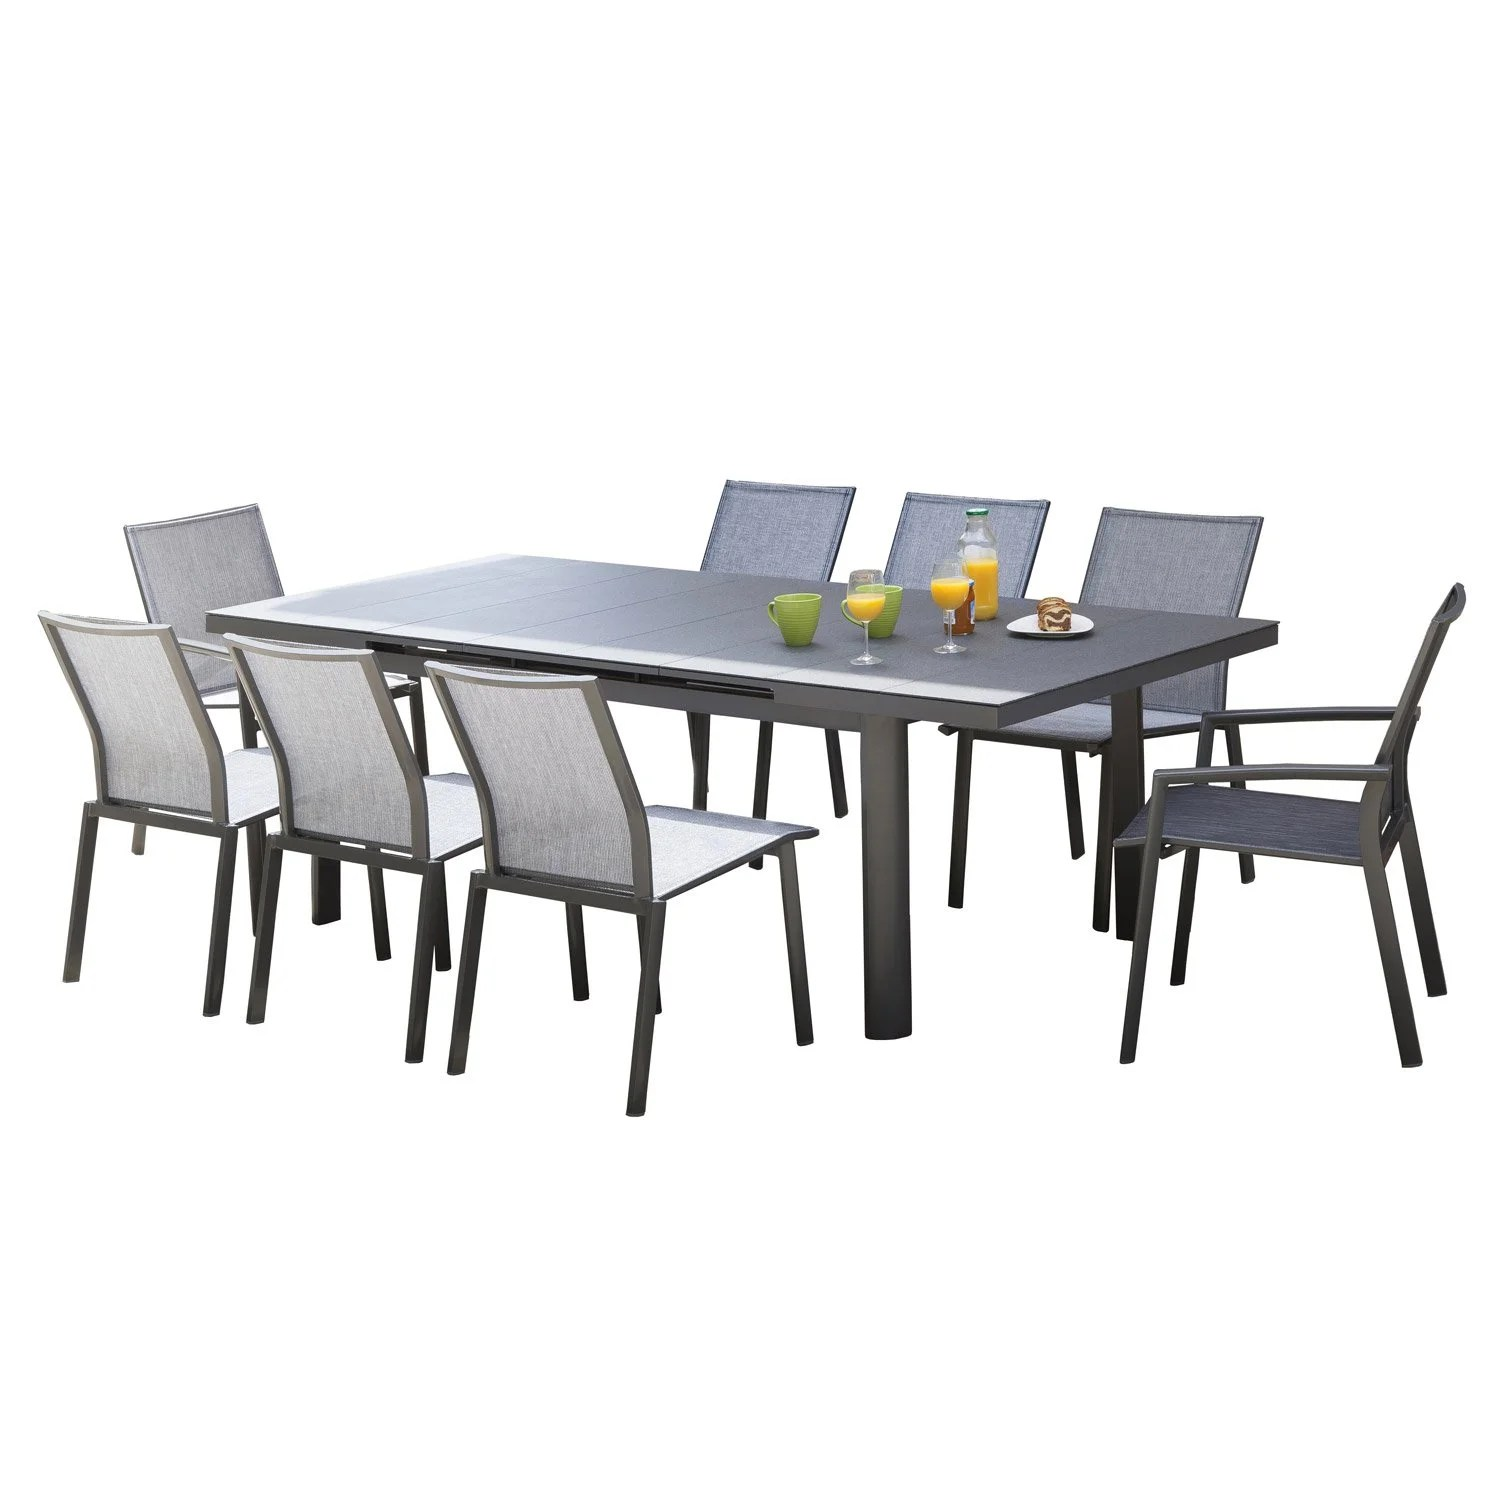 Table de jardin Bora rectangulaire gris 8 personnes  Leroy Merlin